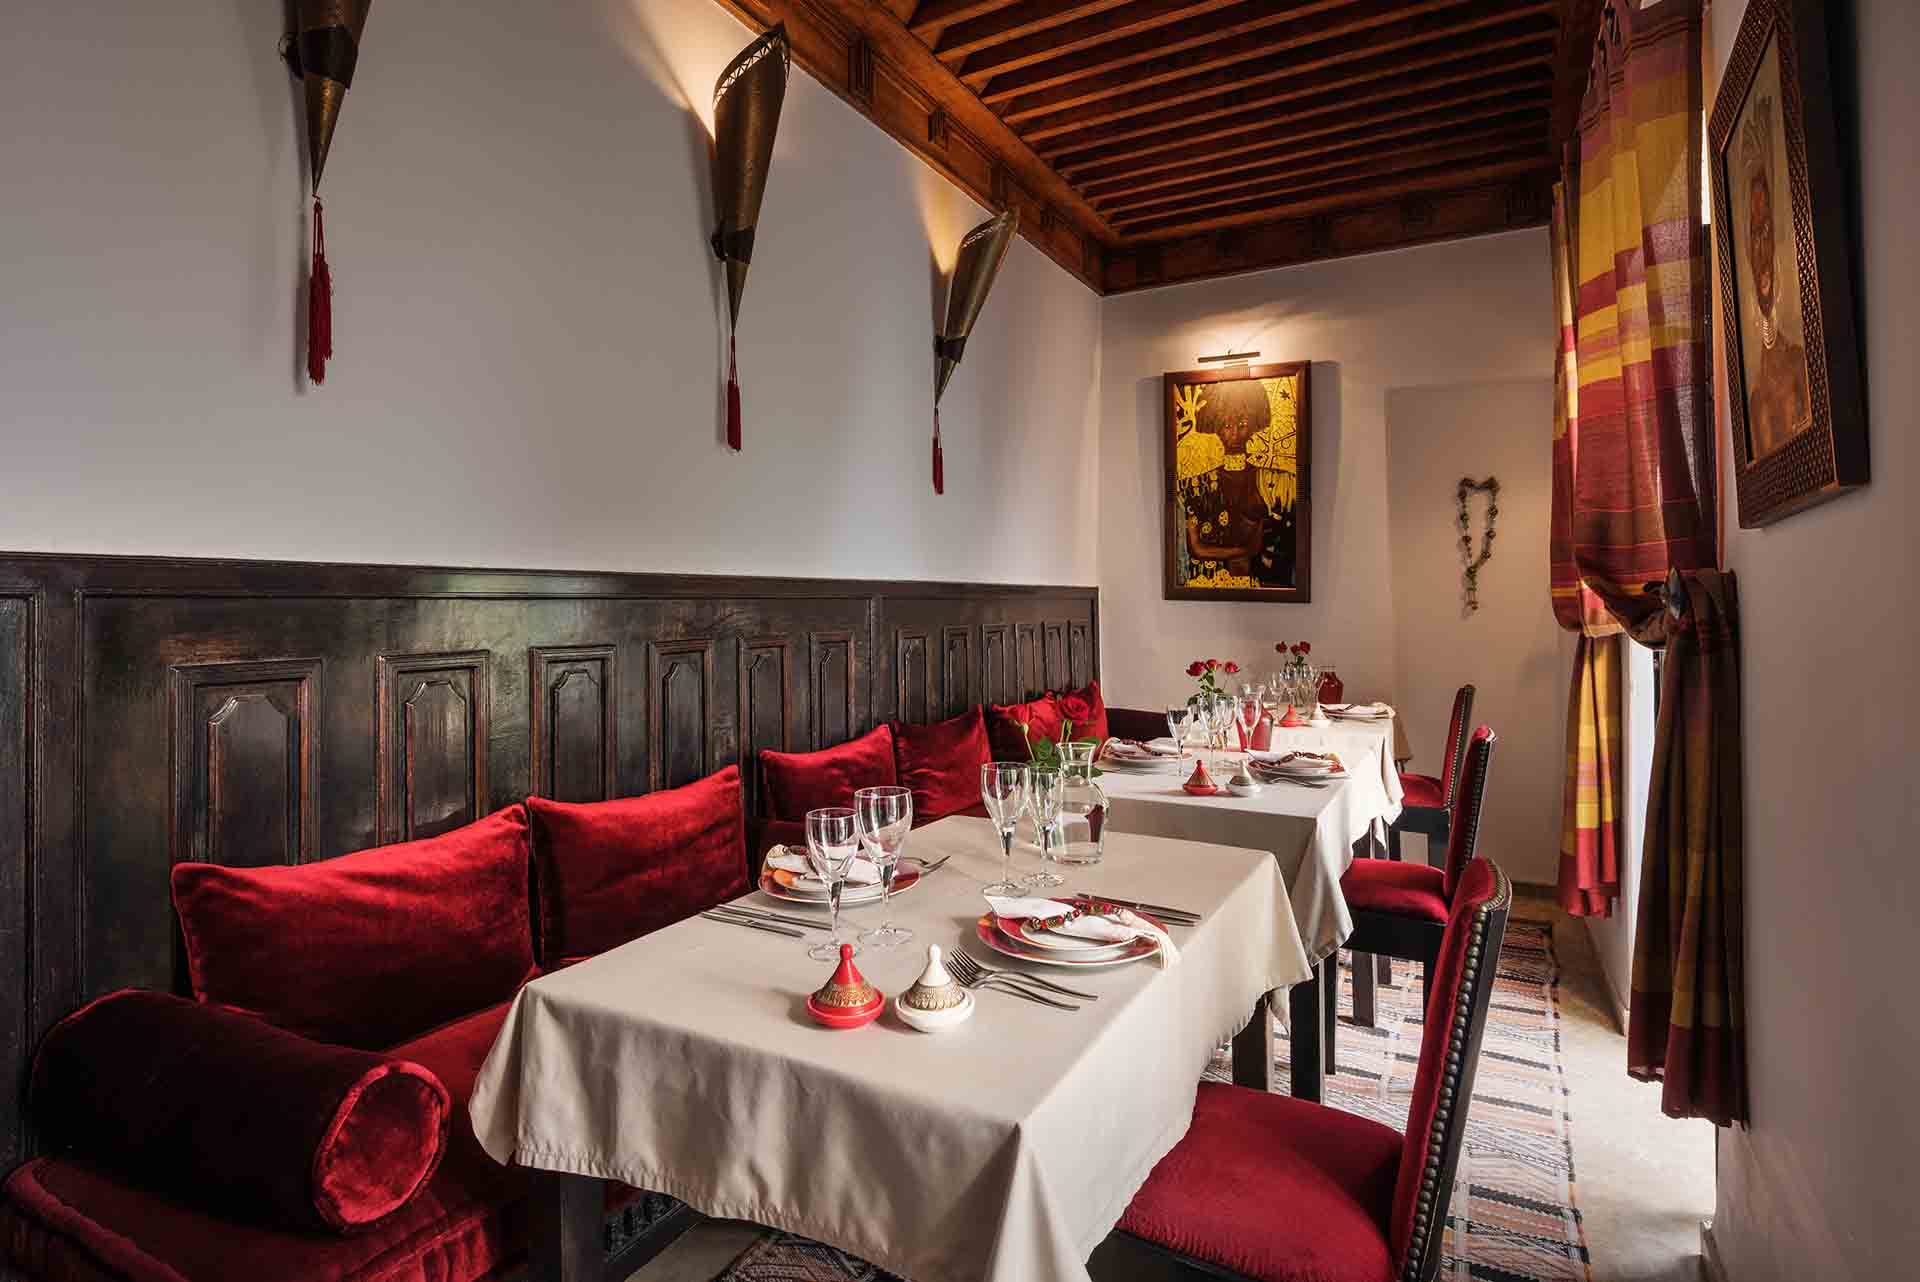 RIAD AZZAR GUEST HOUSE MARRAKECH DINING ROOM